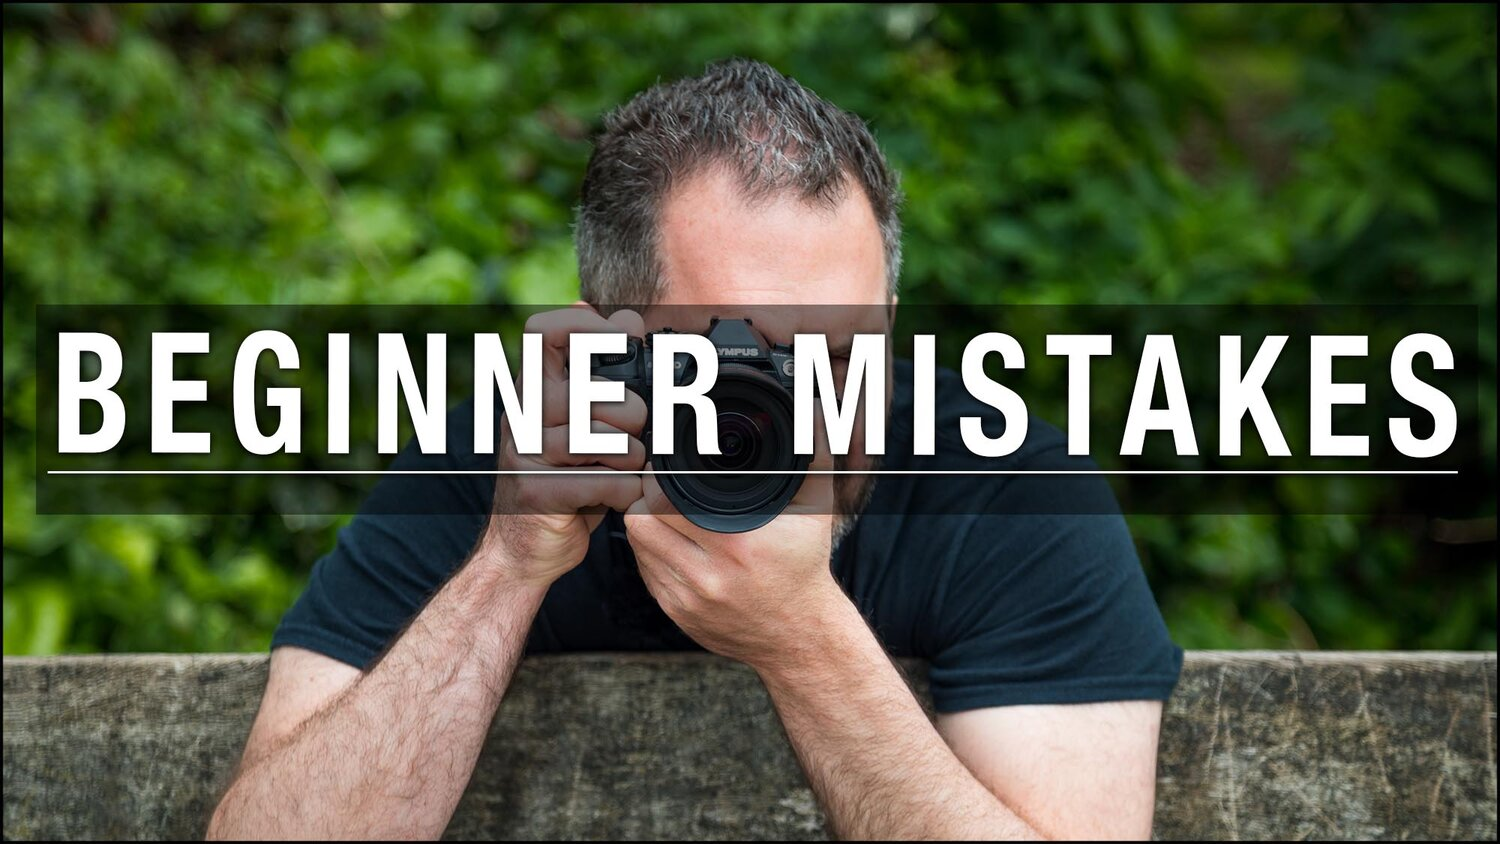 Common Beginner Mistakes and How to Avoid Them